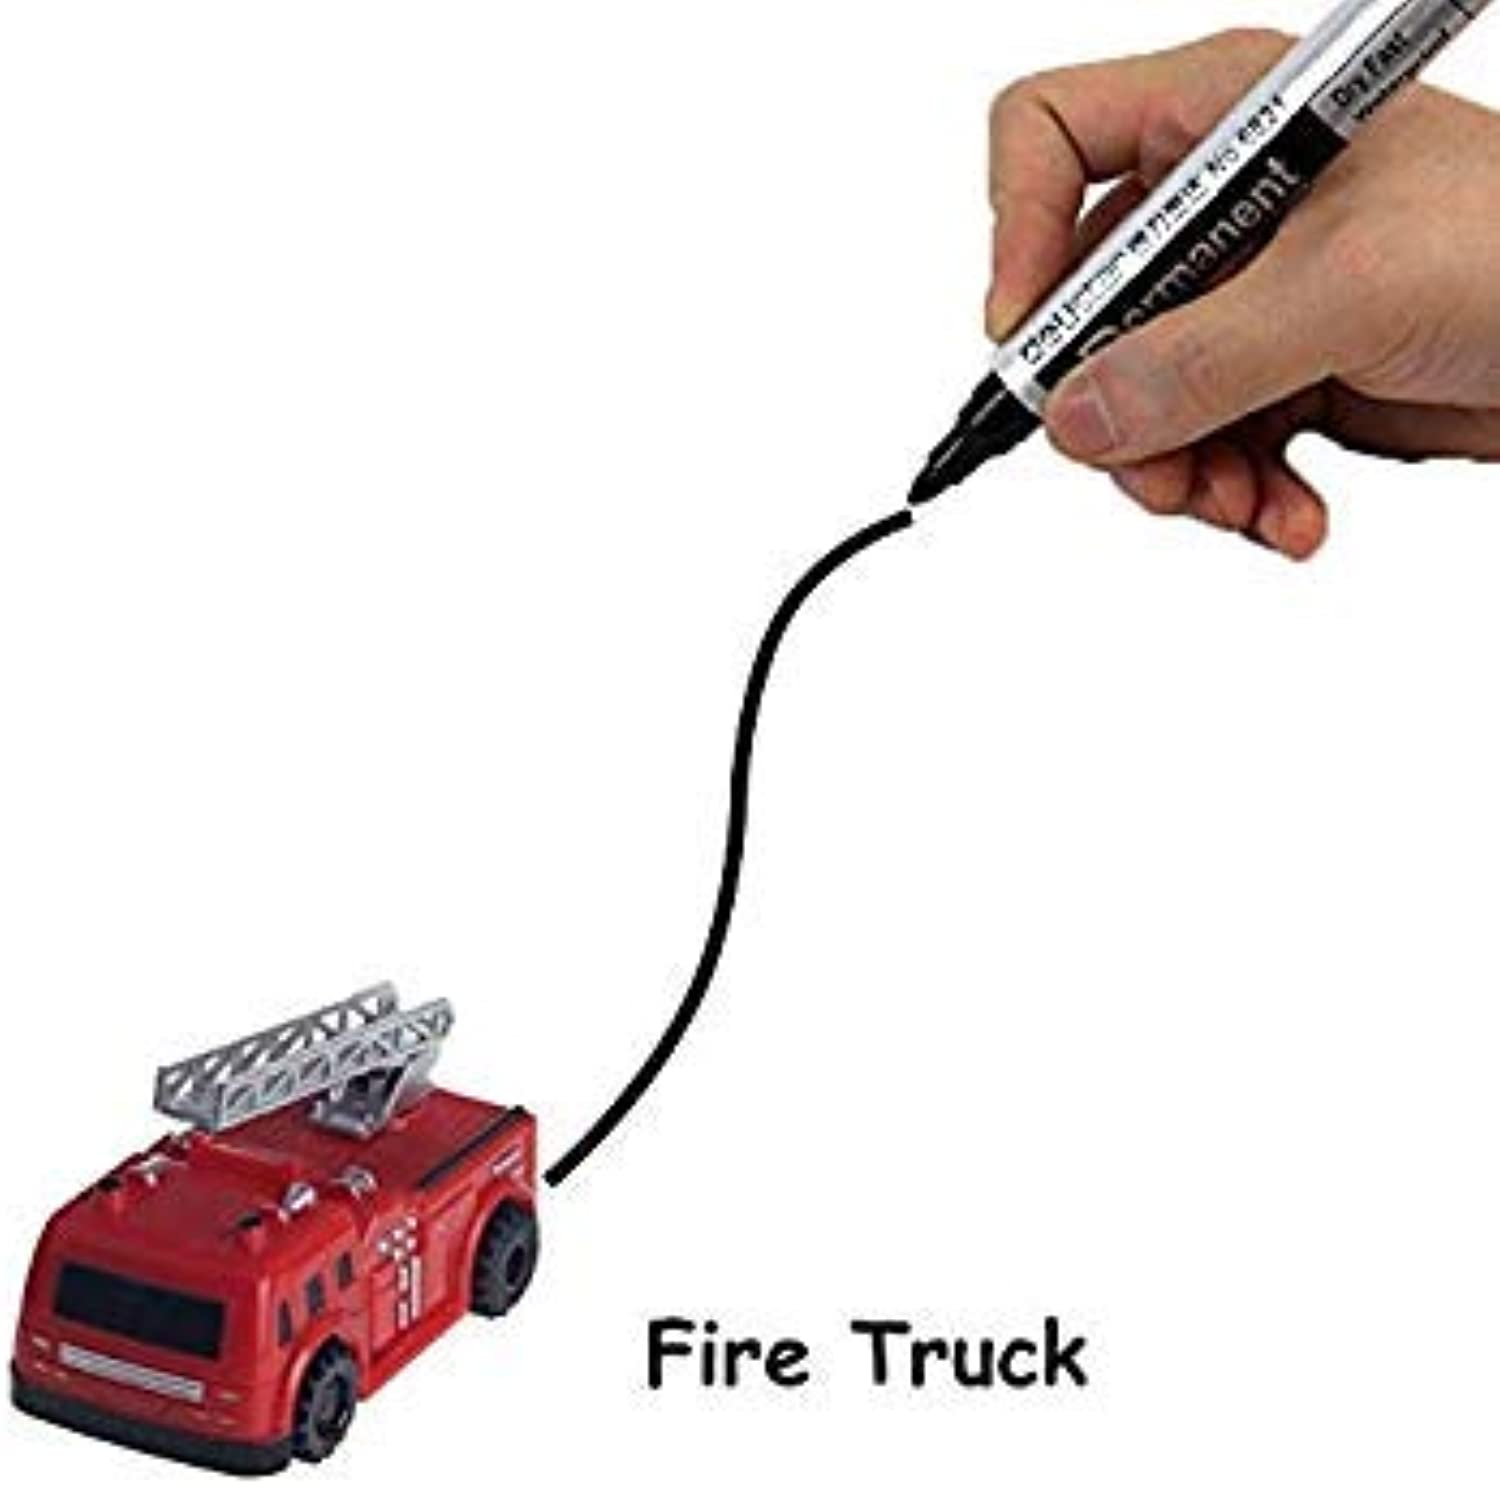 Magical Track Toys inductive Tank car Model car Following by line You Draw Mini Vehicle Intelligence Development Kid's Toy FSWOB Fire Truck